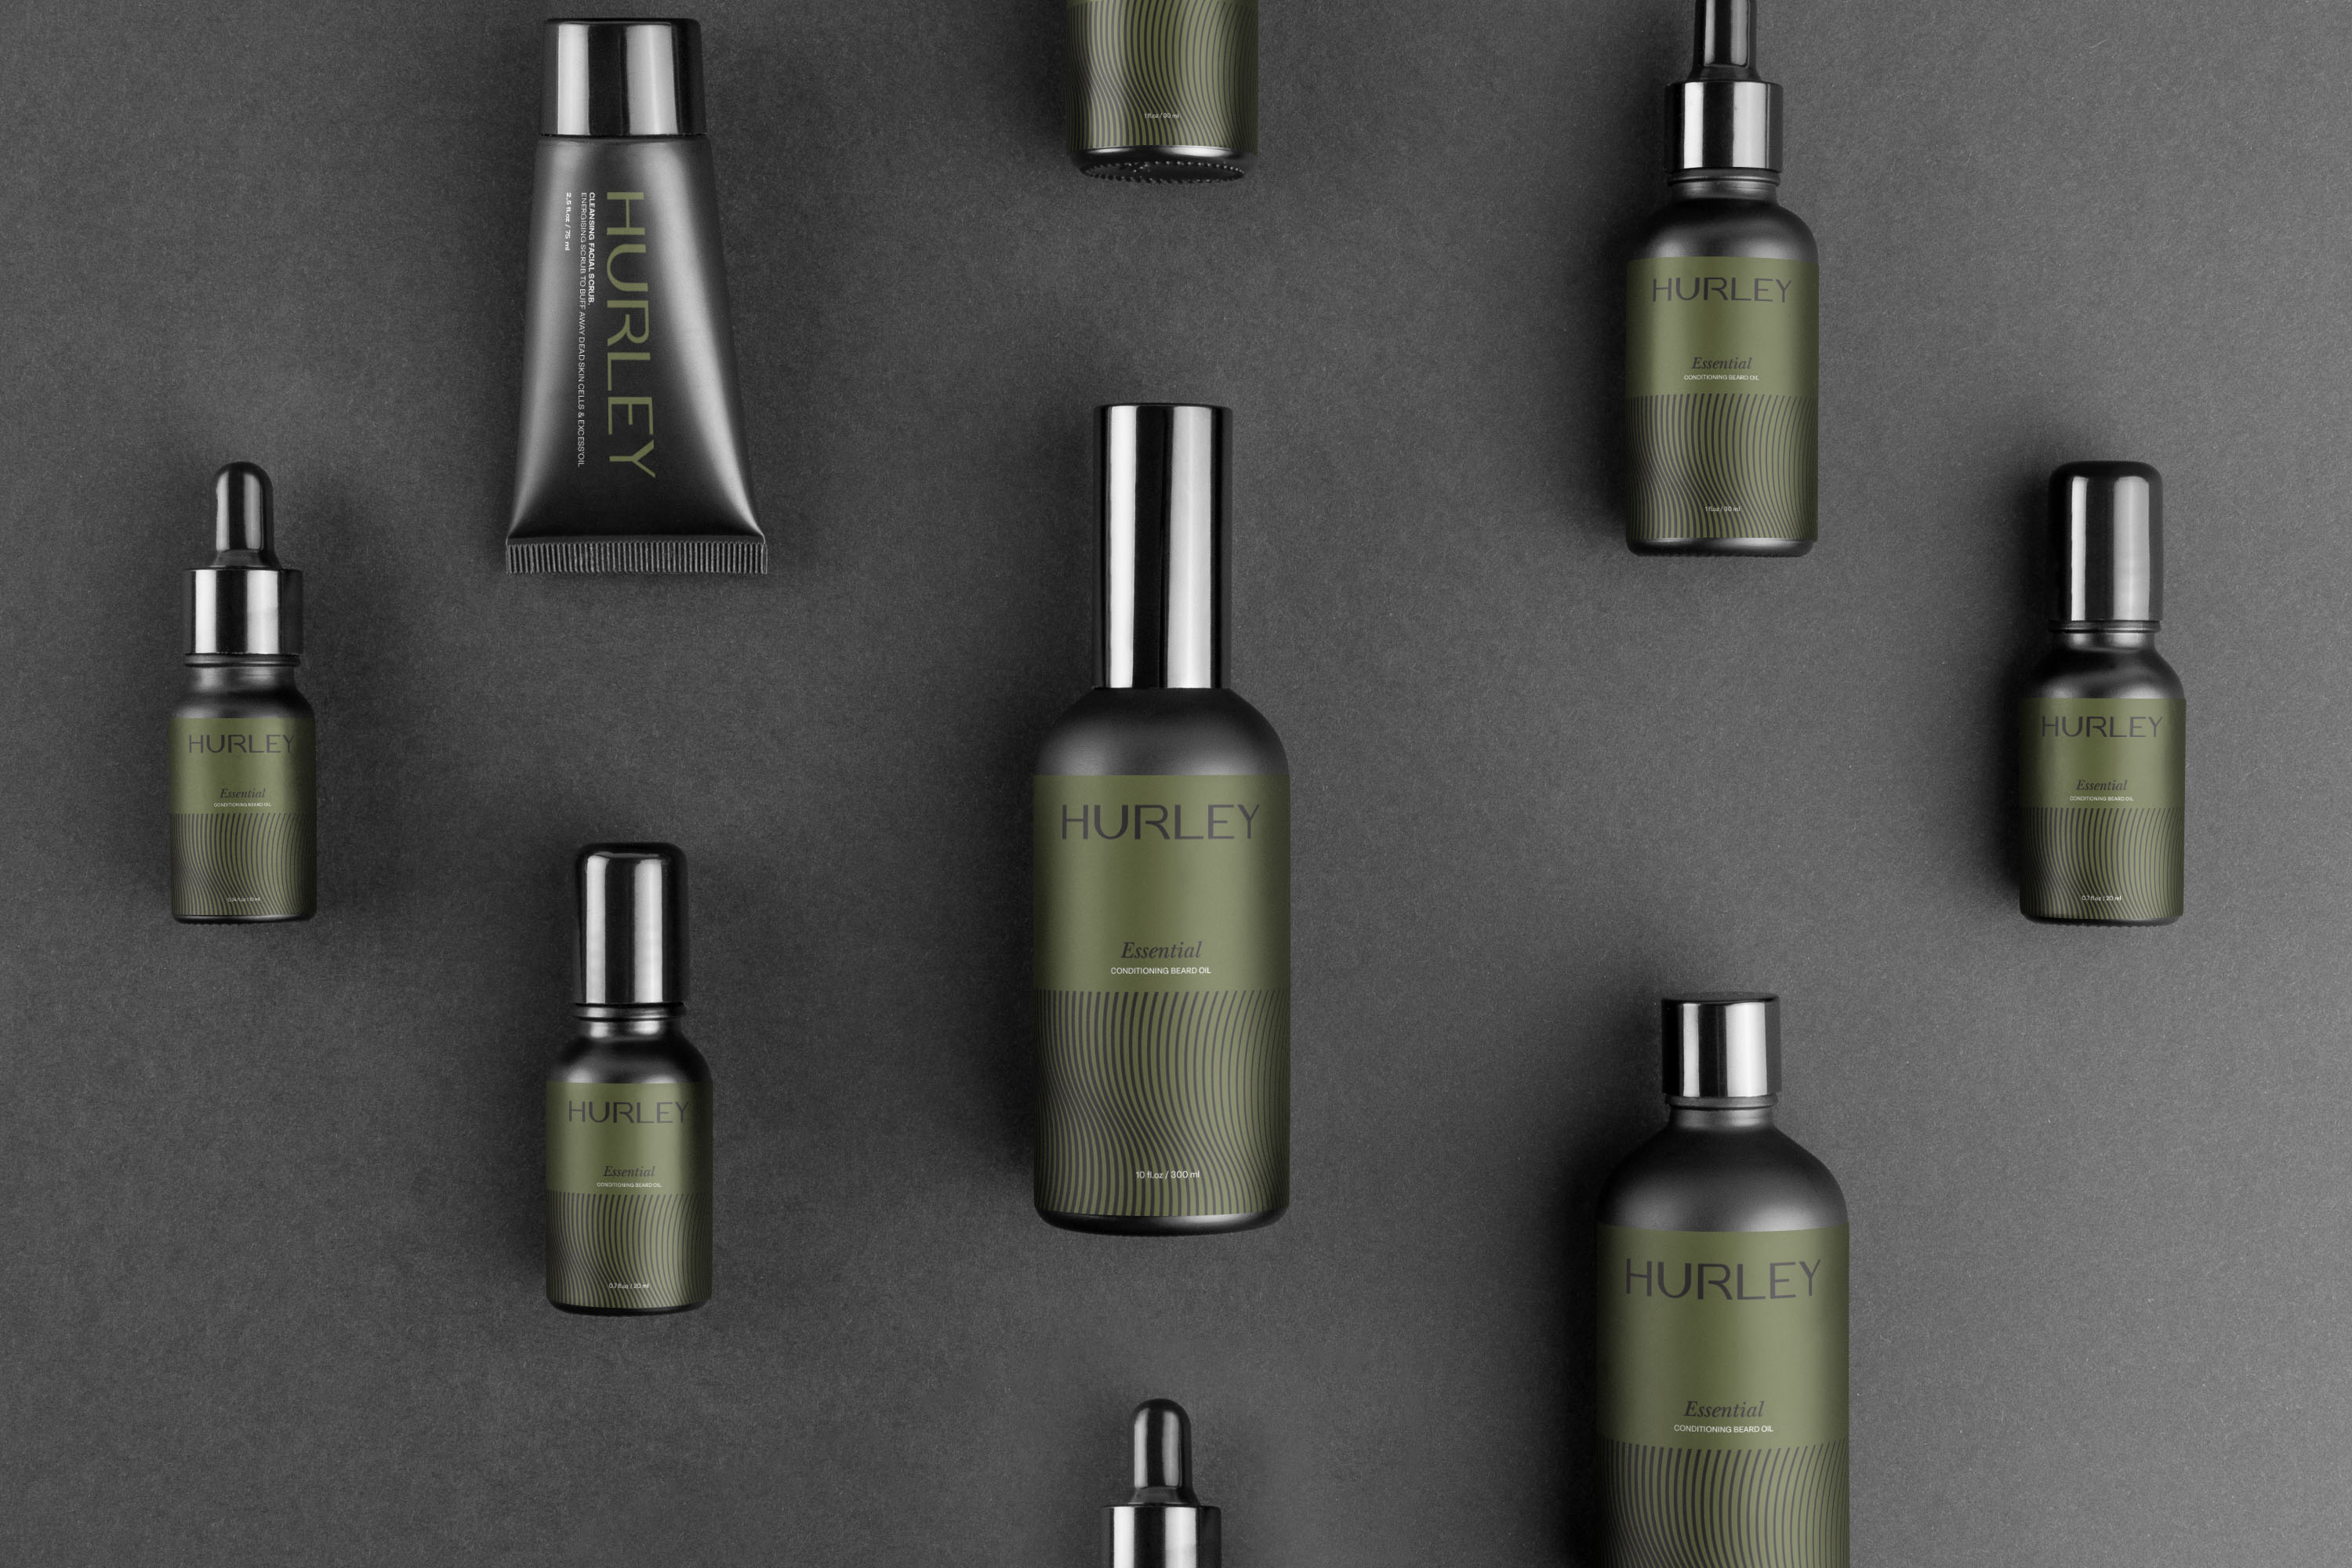 Hurley Beard Oil Brand Identity and Packaging Design by Widarto